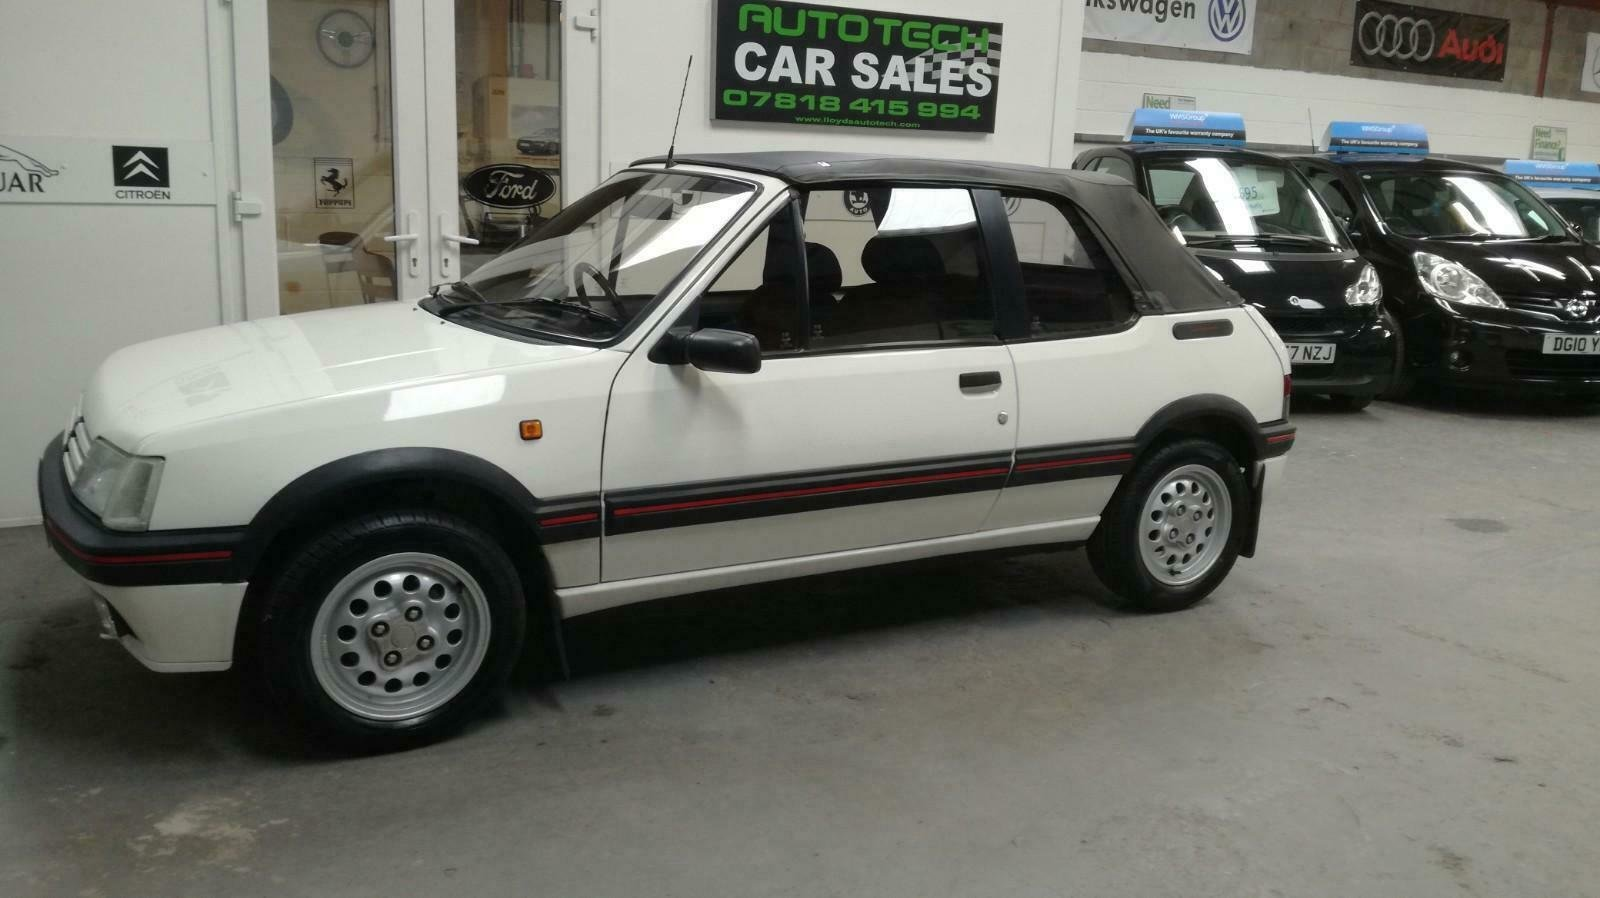 Peugeot 205 CTI 1.6  CABRIOLET 1992 For Sale (picture 2 of 6)